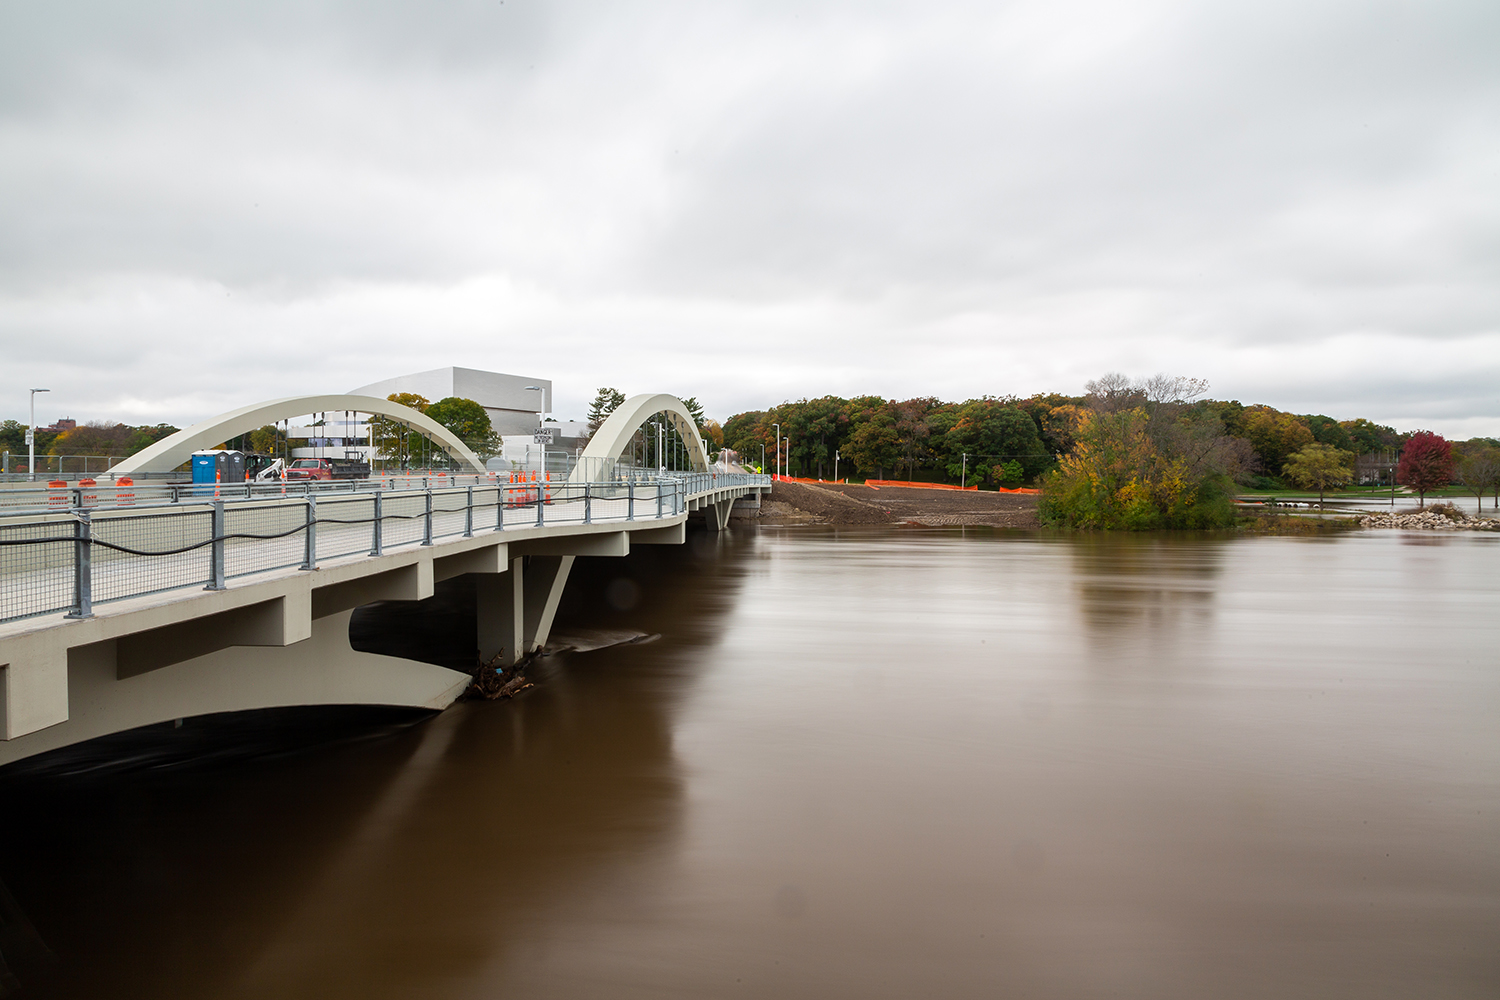 The rain-swollen Iowa river flows by the new Park Rd. Bridge and Dubuque St on Wednesday, Oct. 10, 2018.